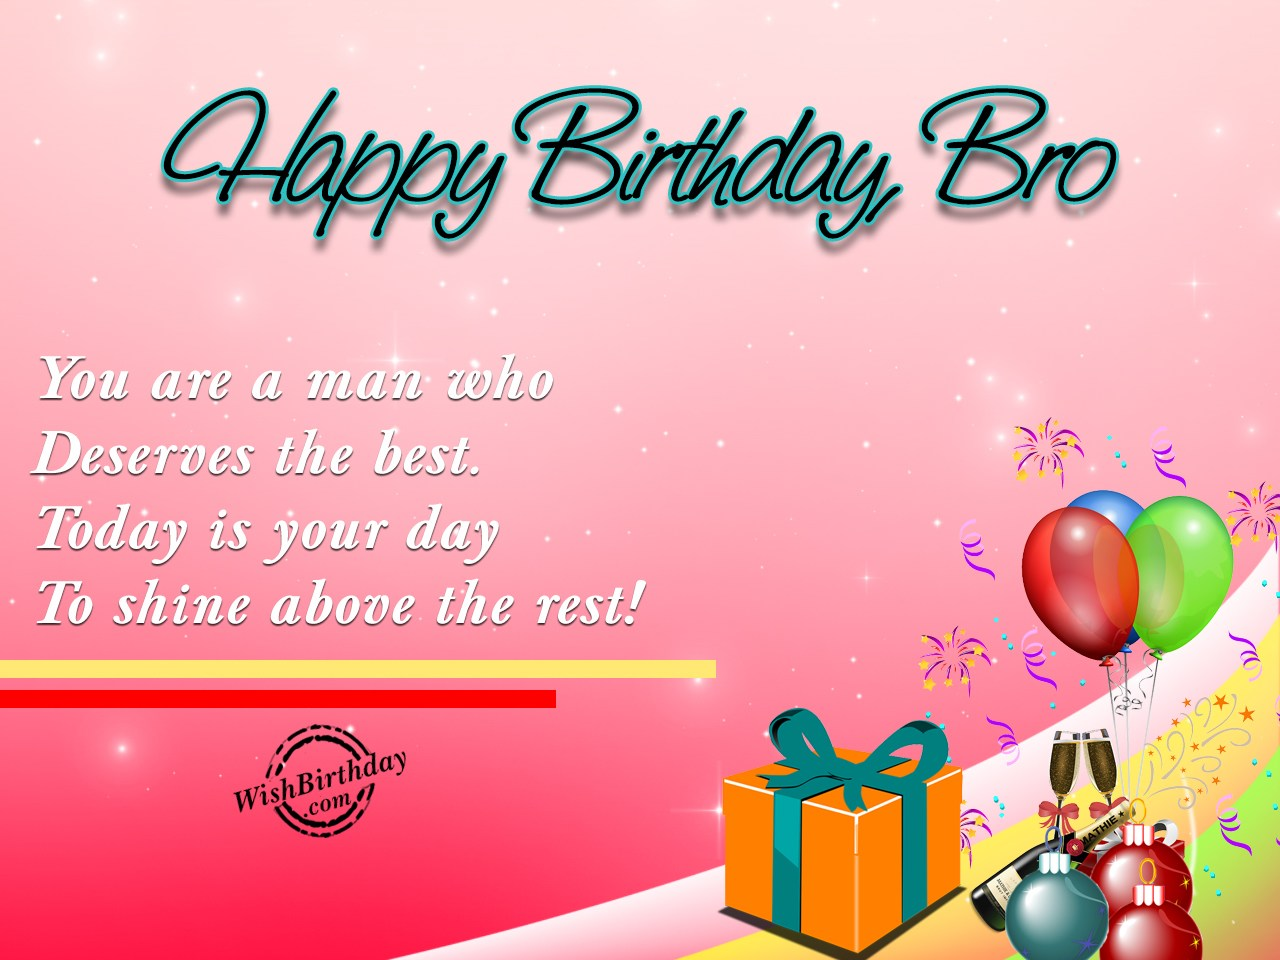 birthday wishes for brother greeting cards ; b2c55a39a04606a57e95b618ec7c138b